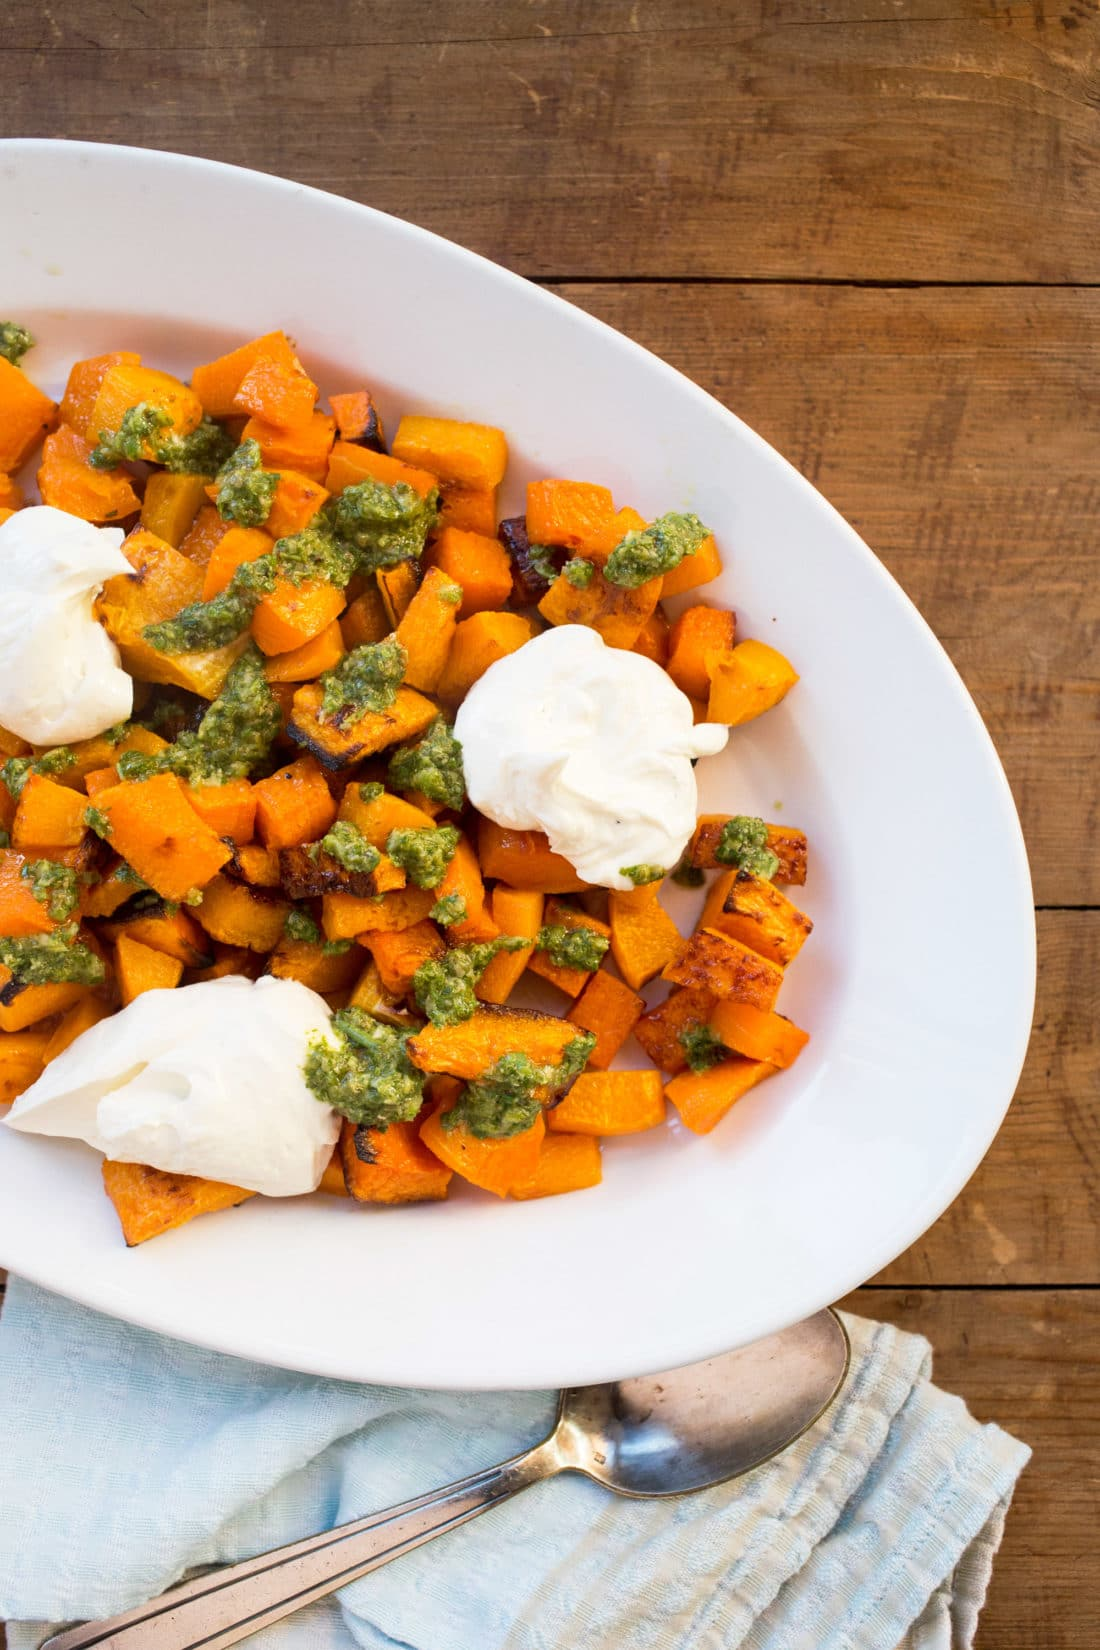 Roasted Squash with Salsa Verde and Whipped Feta and Ricotta